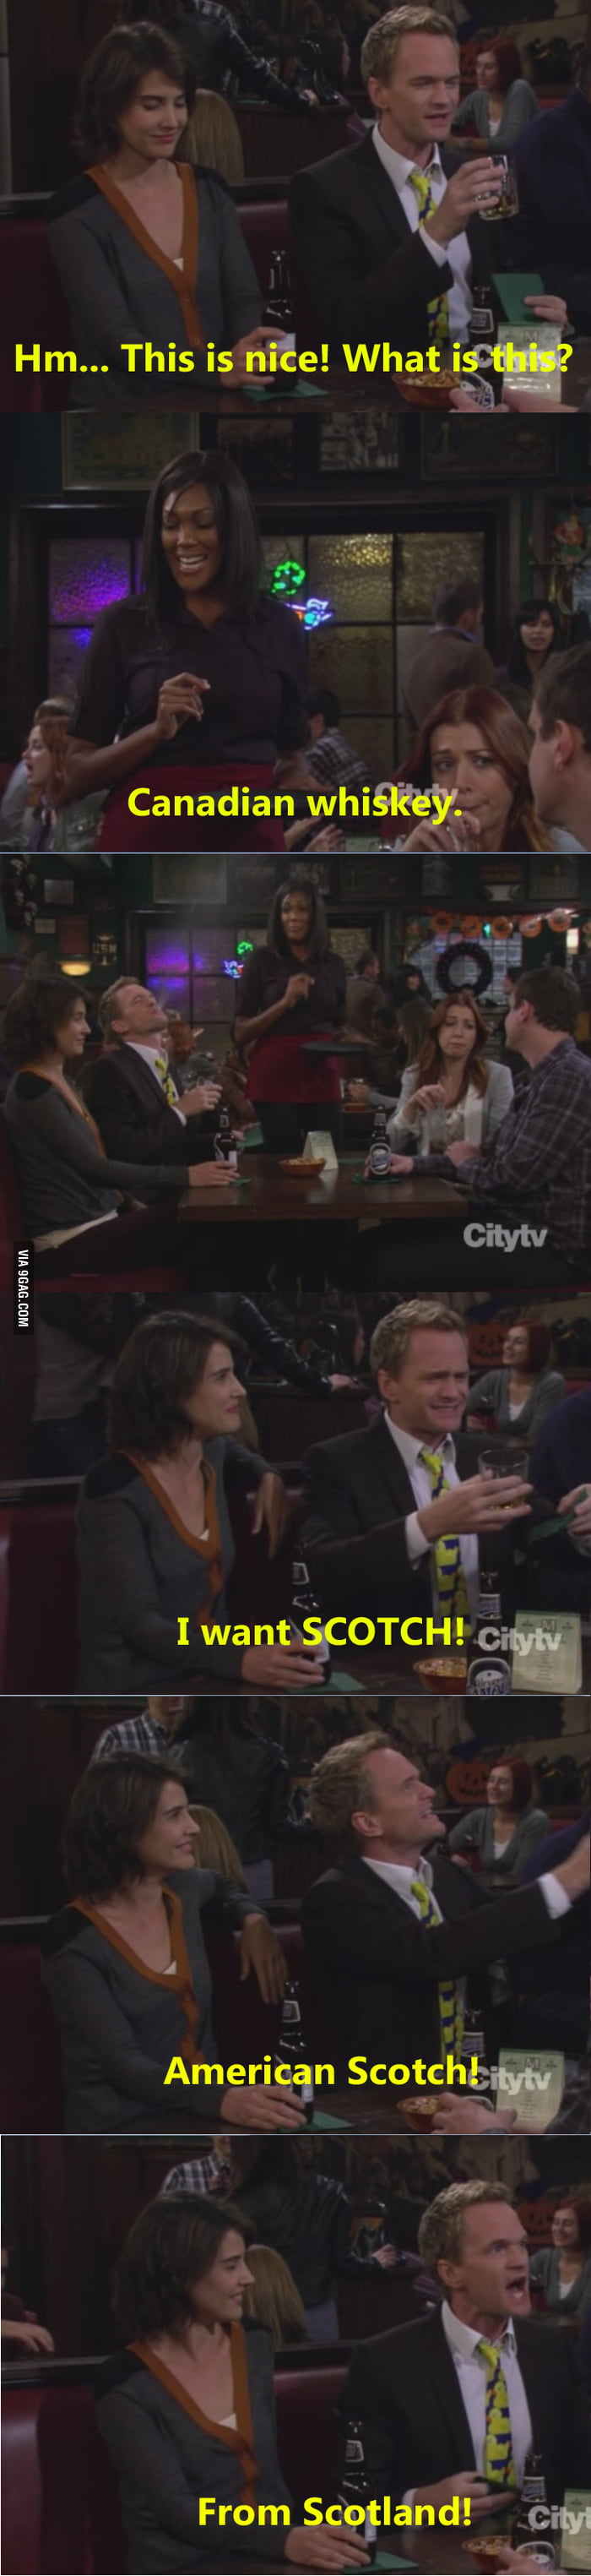 Just Barney being Barney